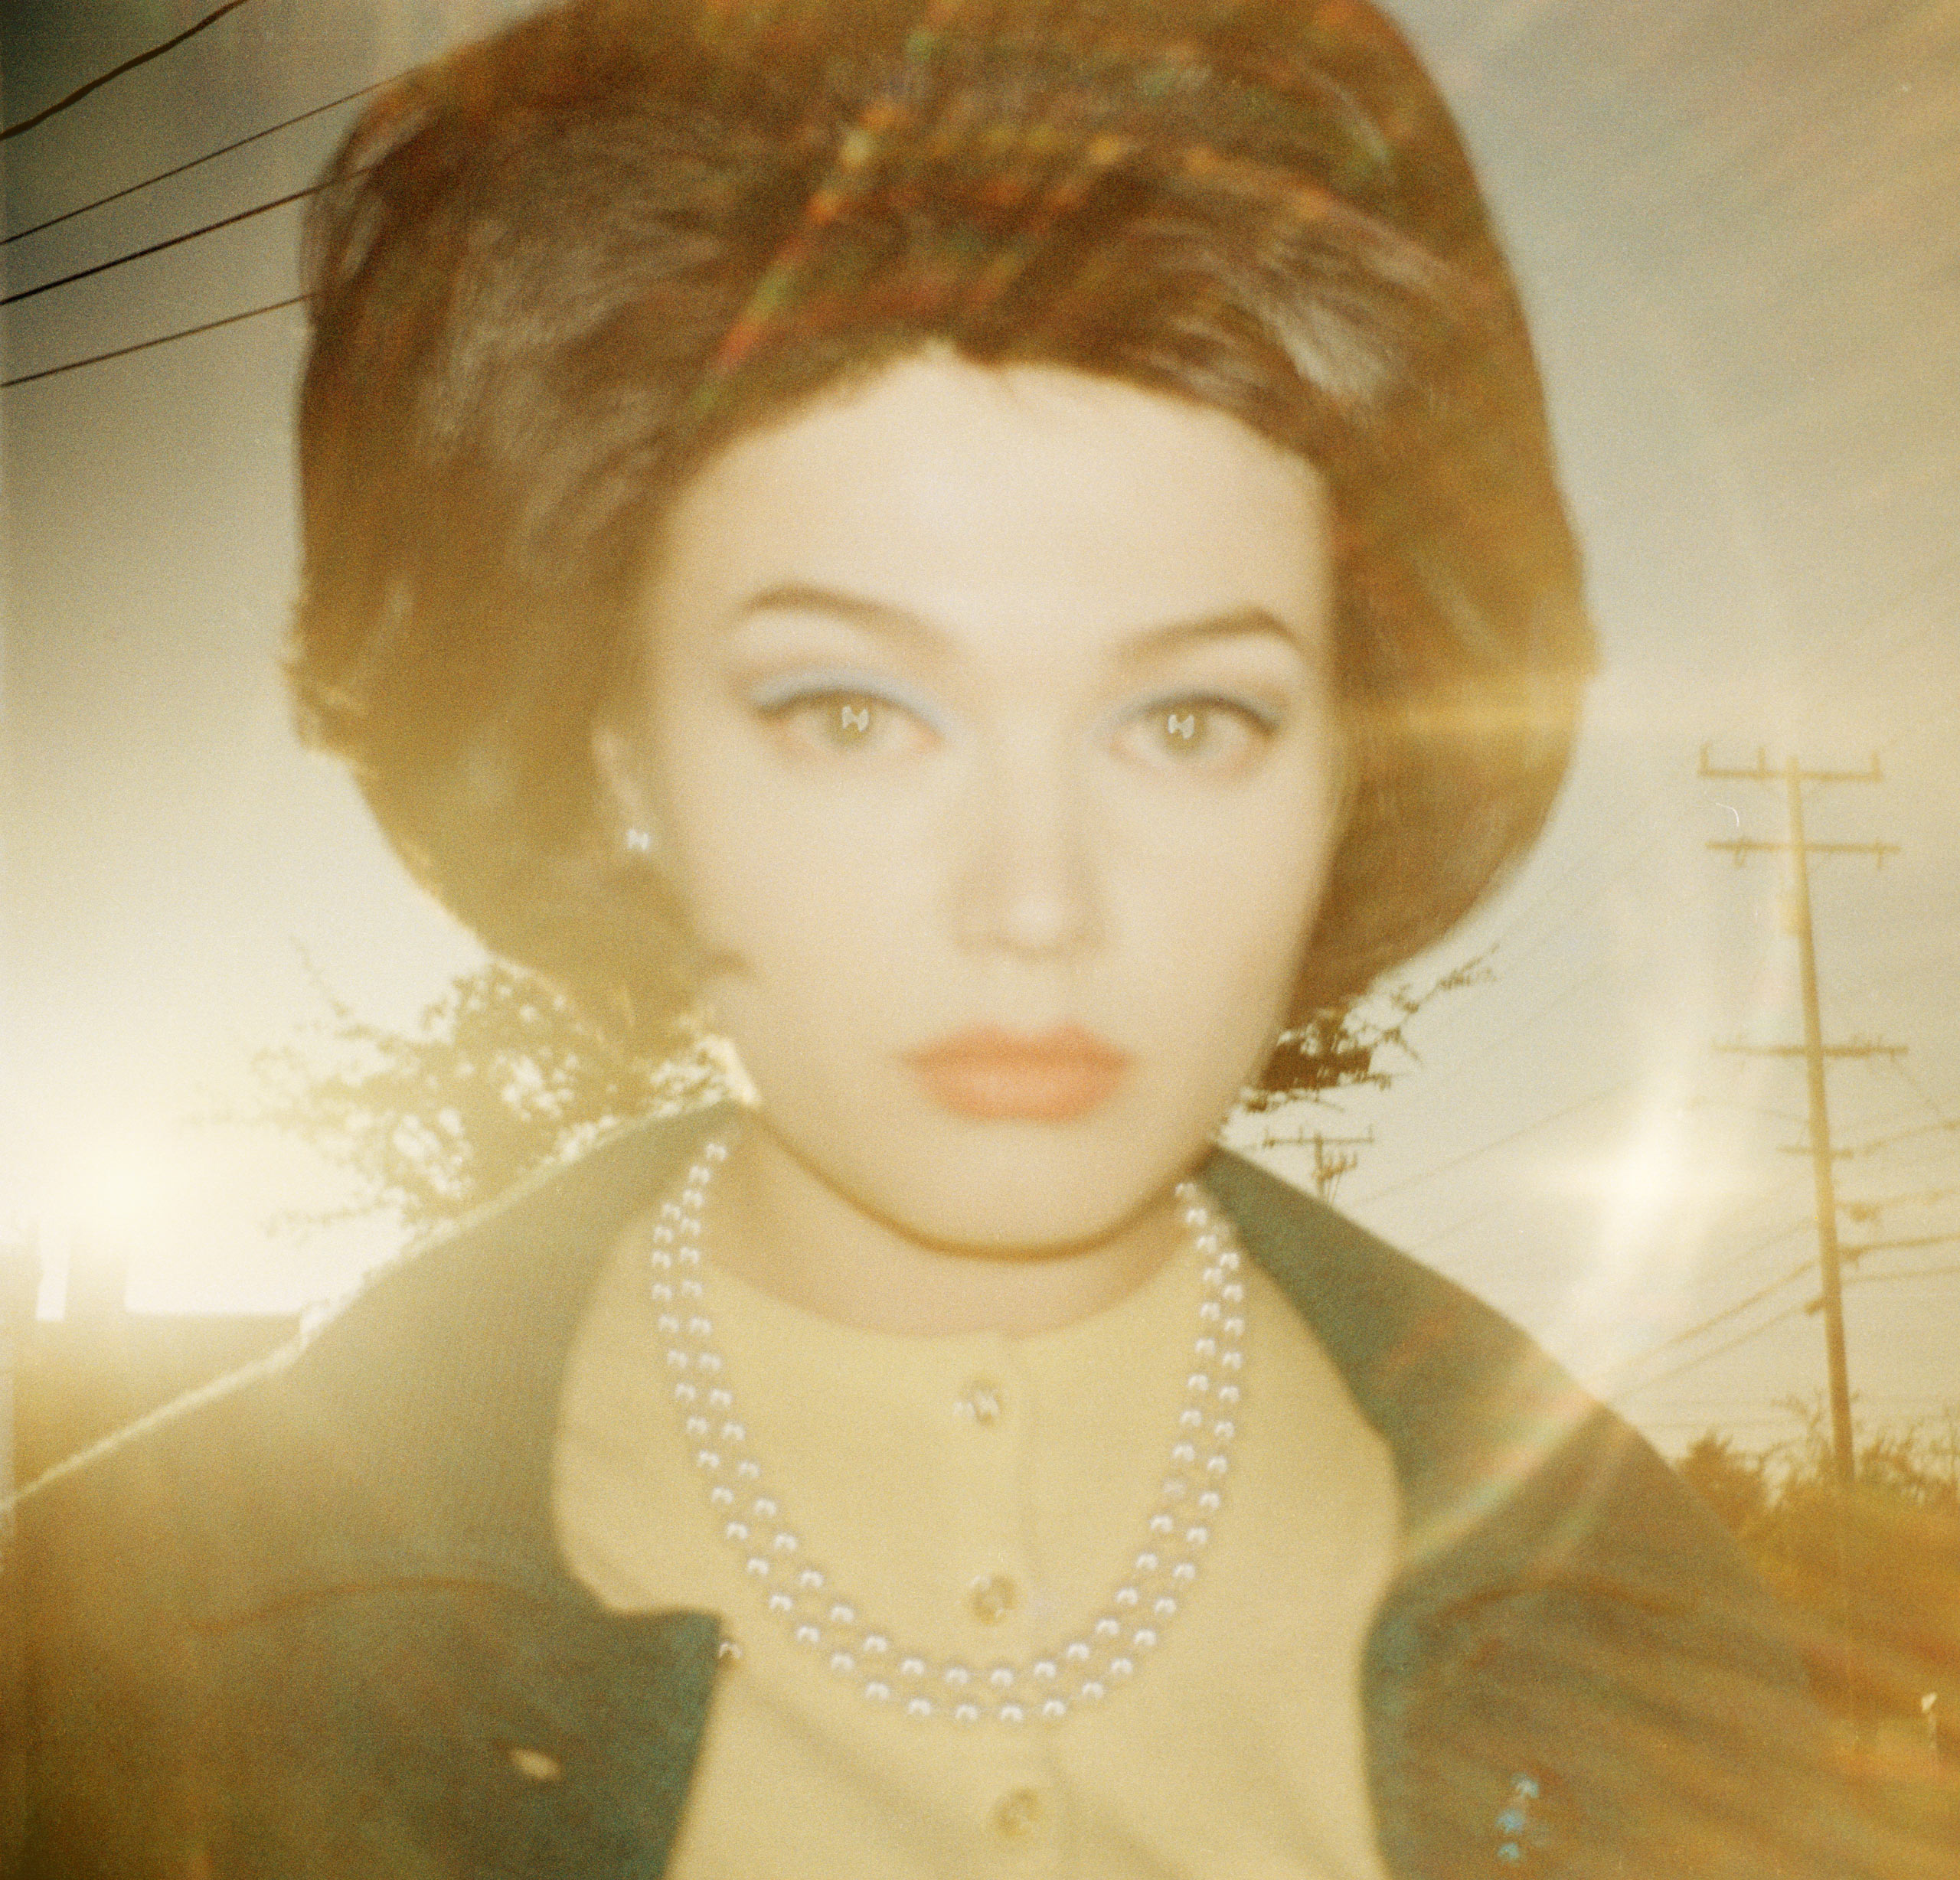 Todd Hido took this portrait using an original Kodak 126 Film Instamatic analog camera, whose shots compose entirely his Instagram feed.